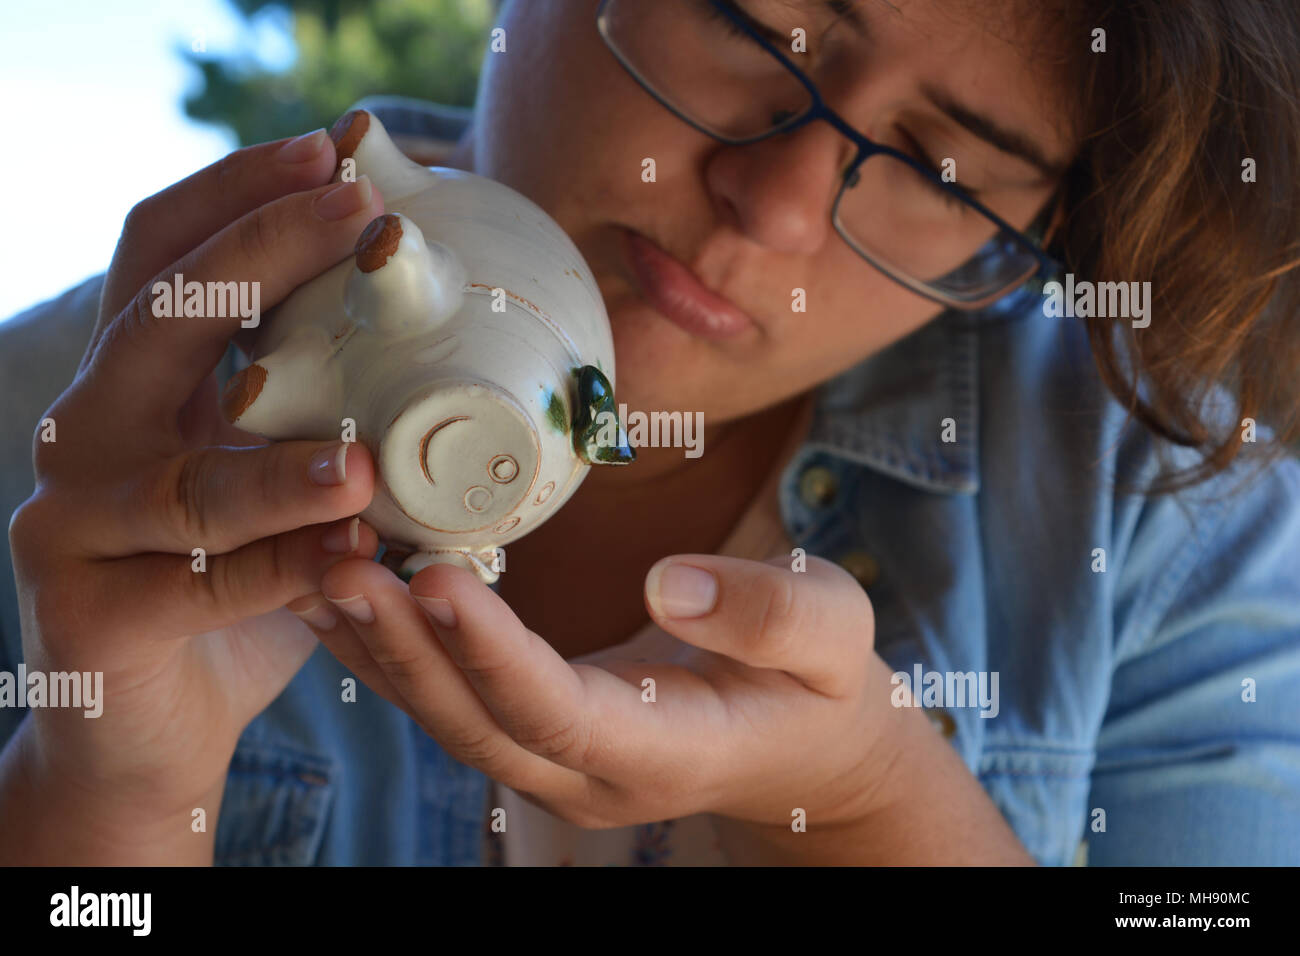 Millennial woman holding a ceramic piggy bank, looking despondent, close-up - Stock Image